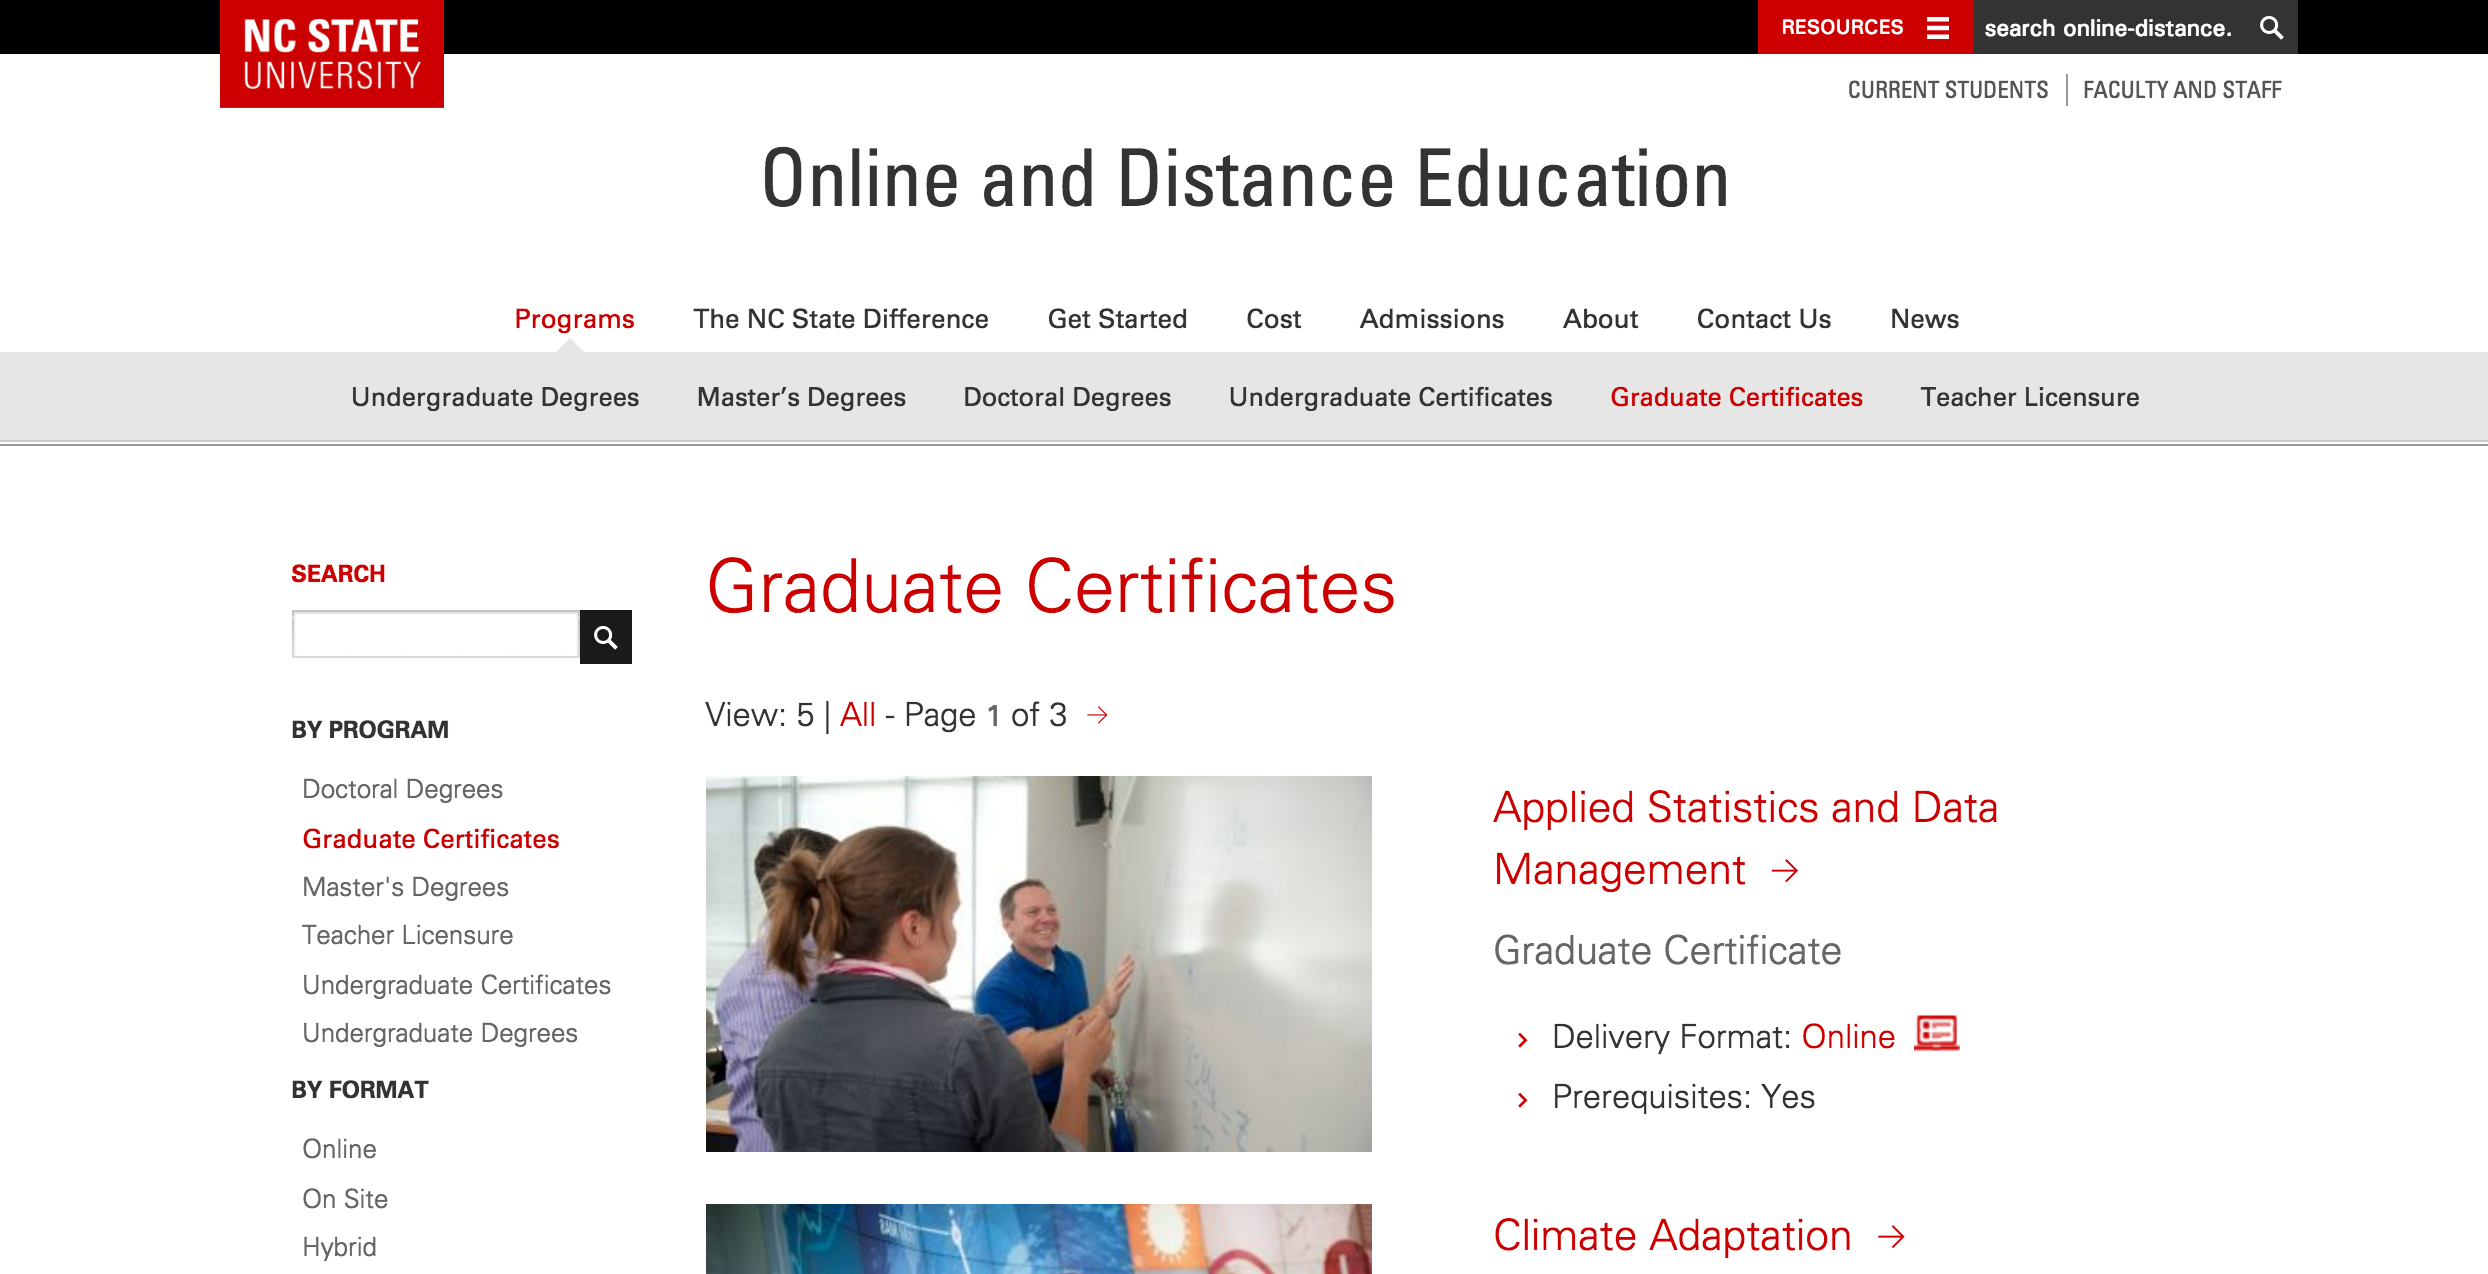 Online and Distance Education Website